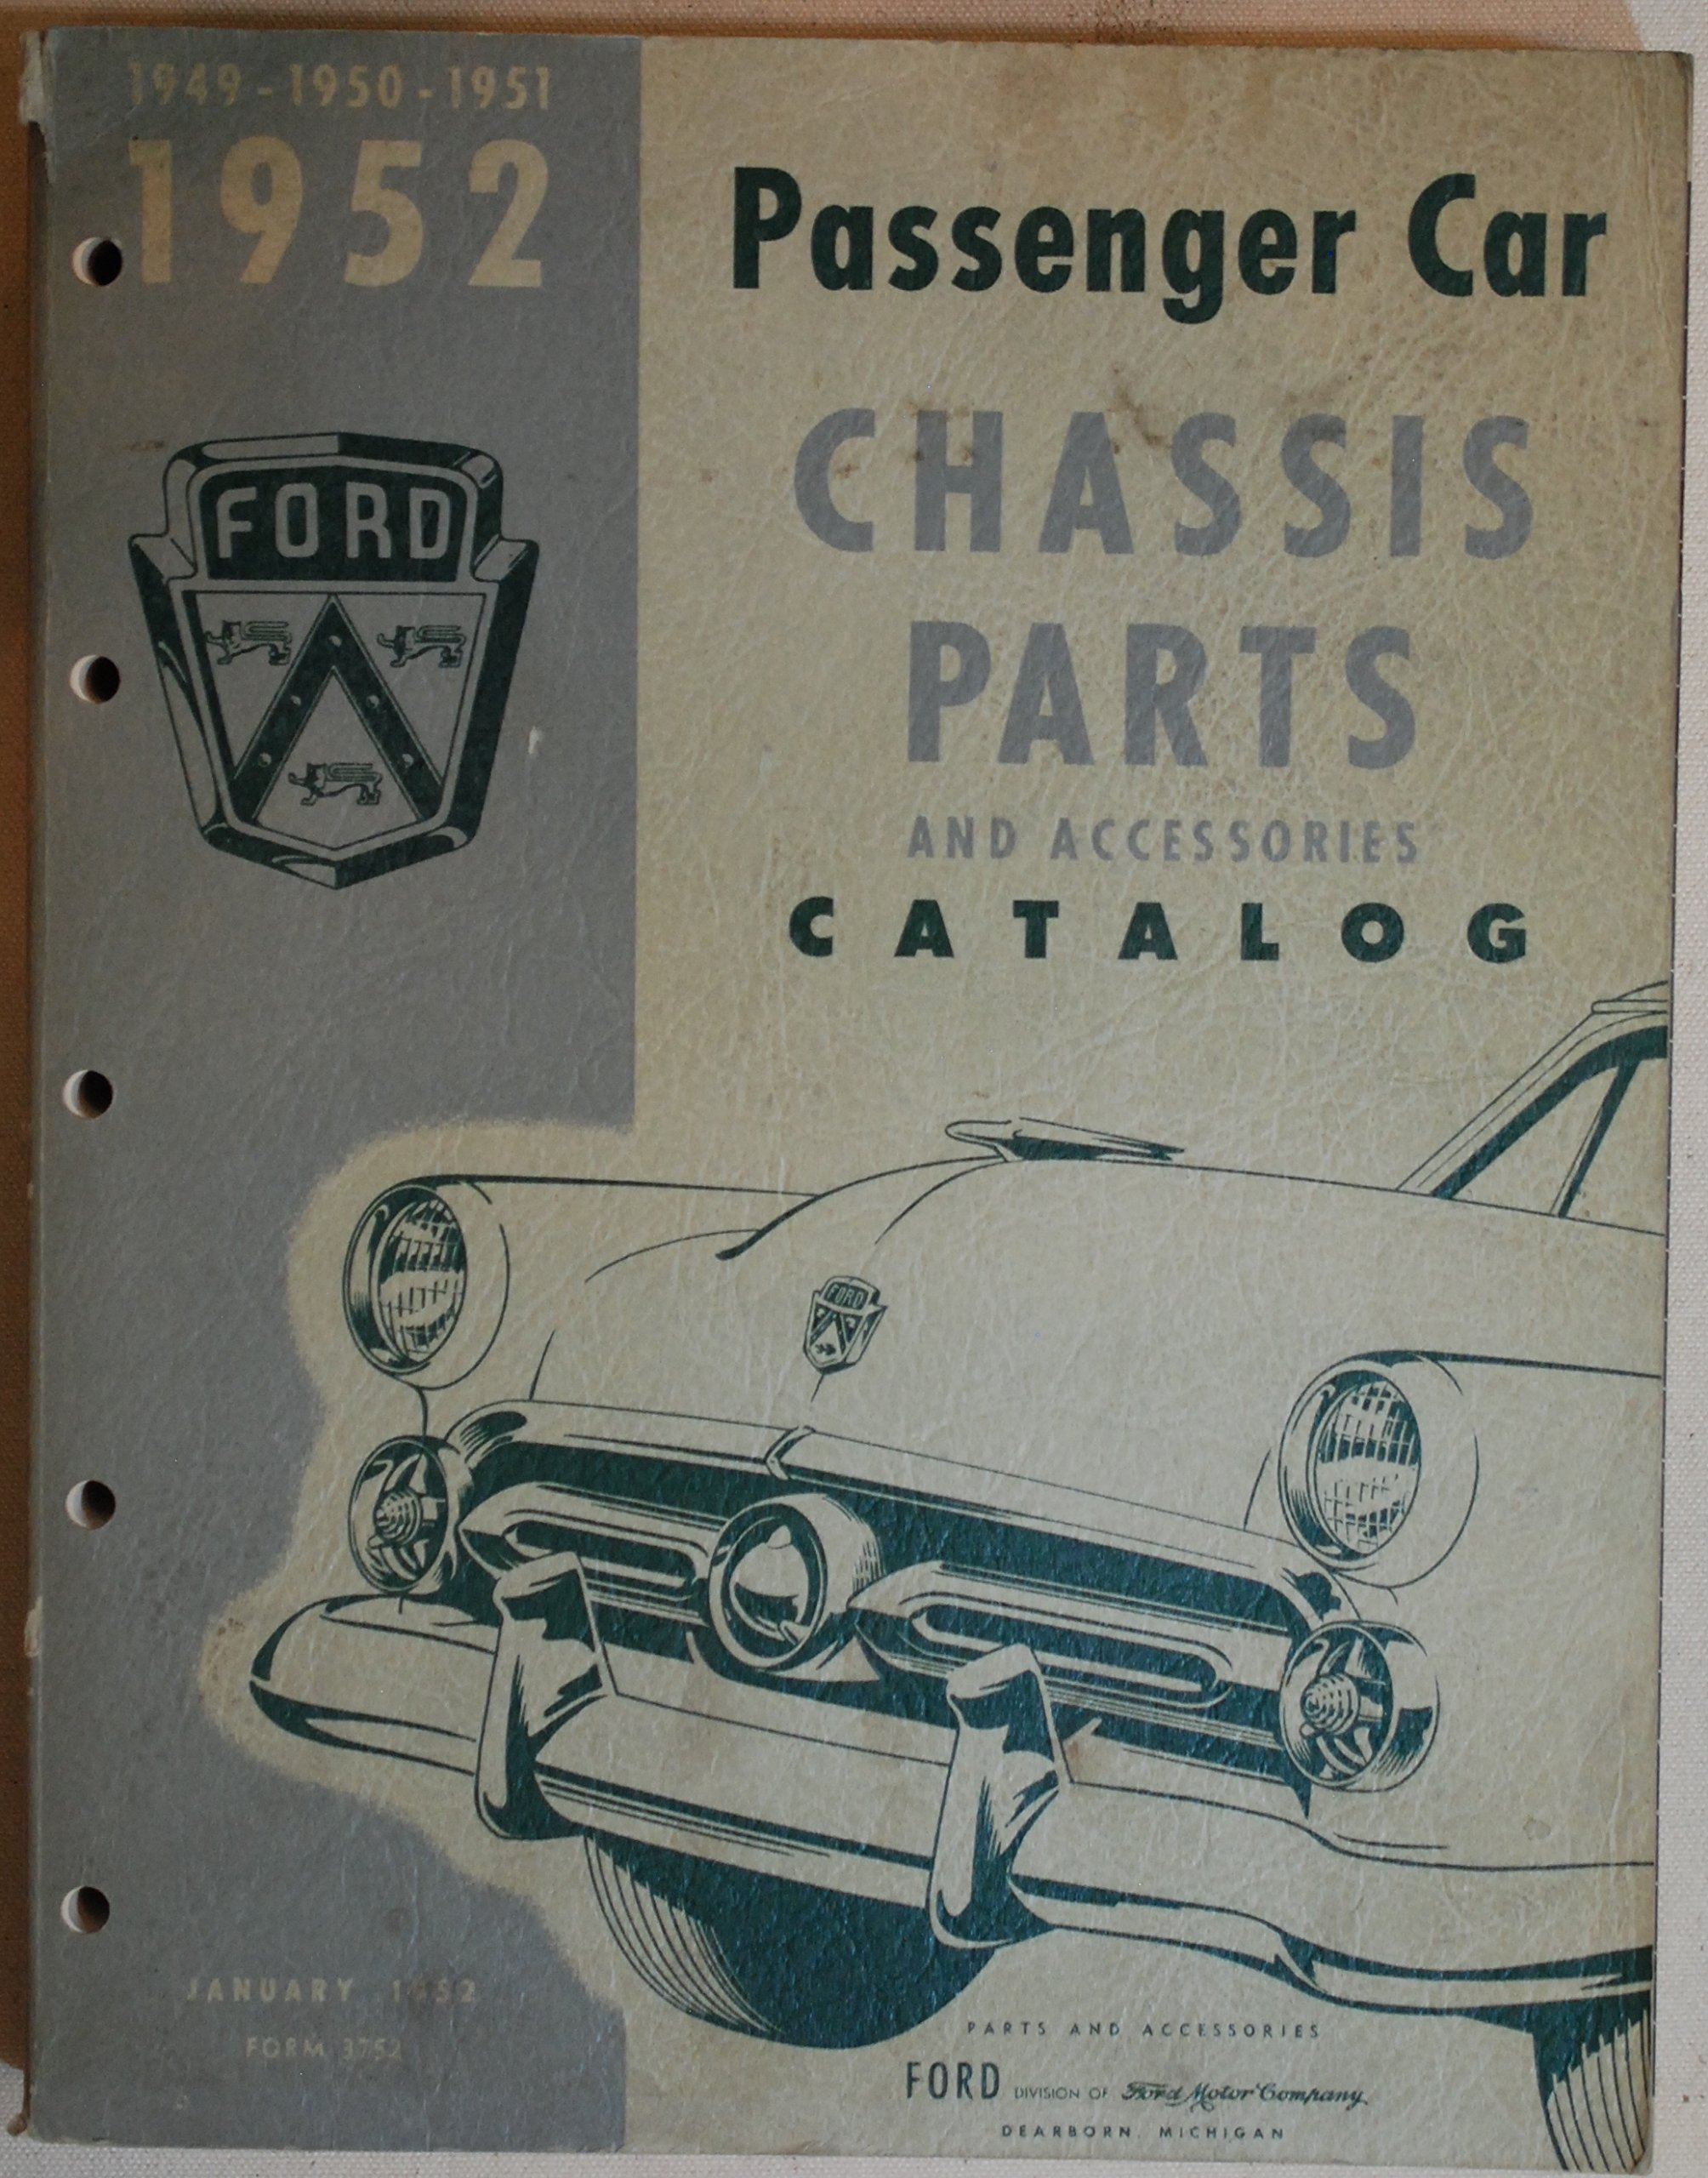 1949-1950-1951-1952 Ford Passenger Car Chassis Parts and Accessories  Catalog January 1952: Ford Motor Company: Amazon.com: Books